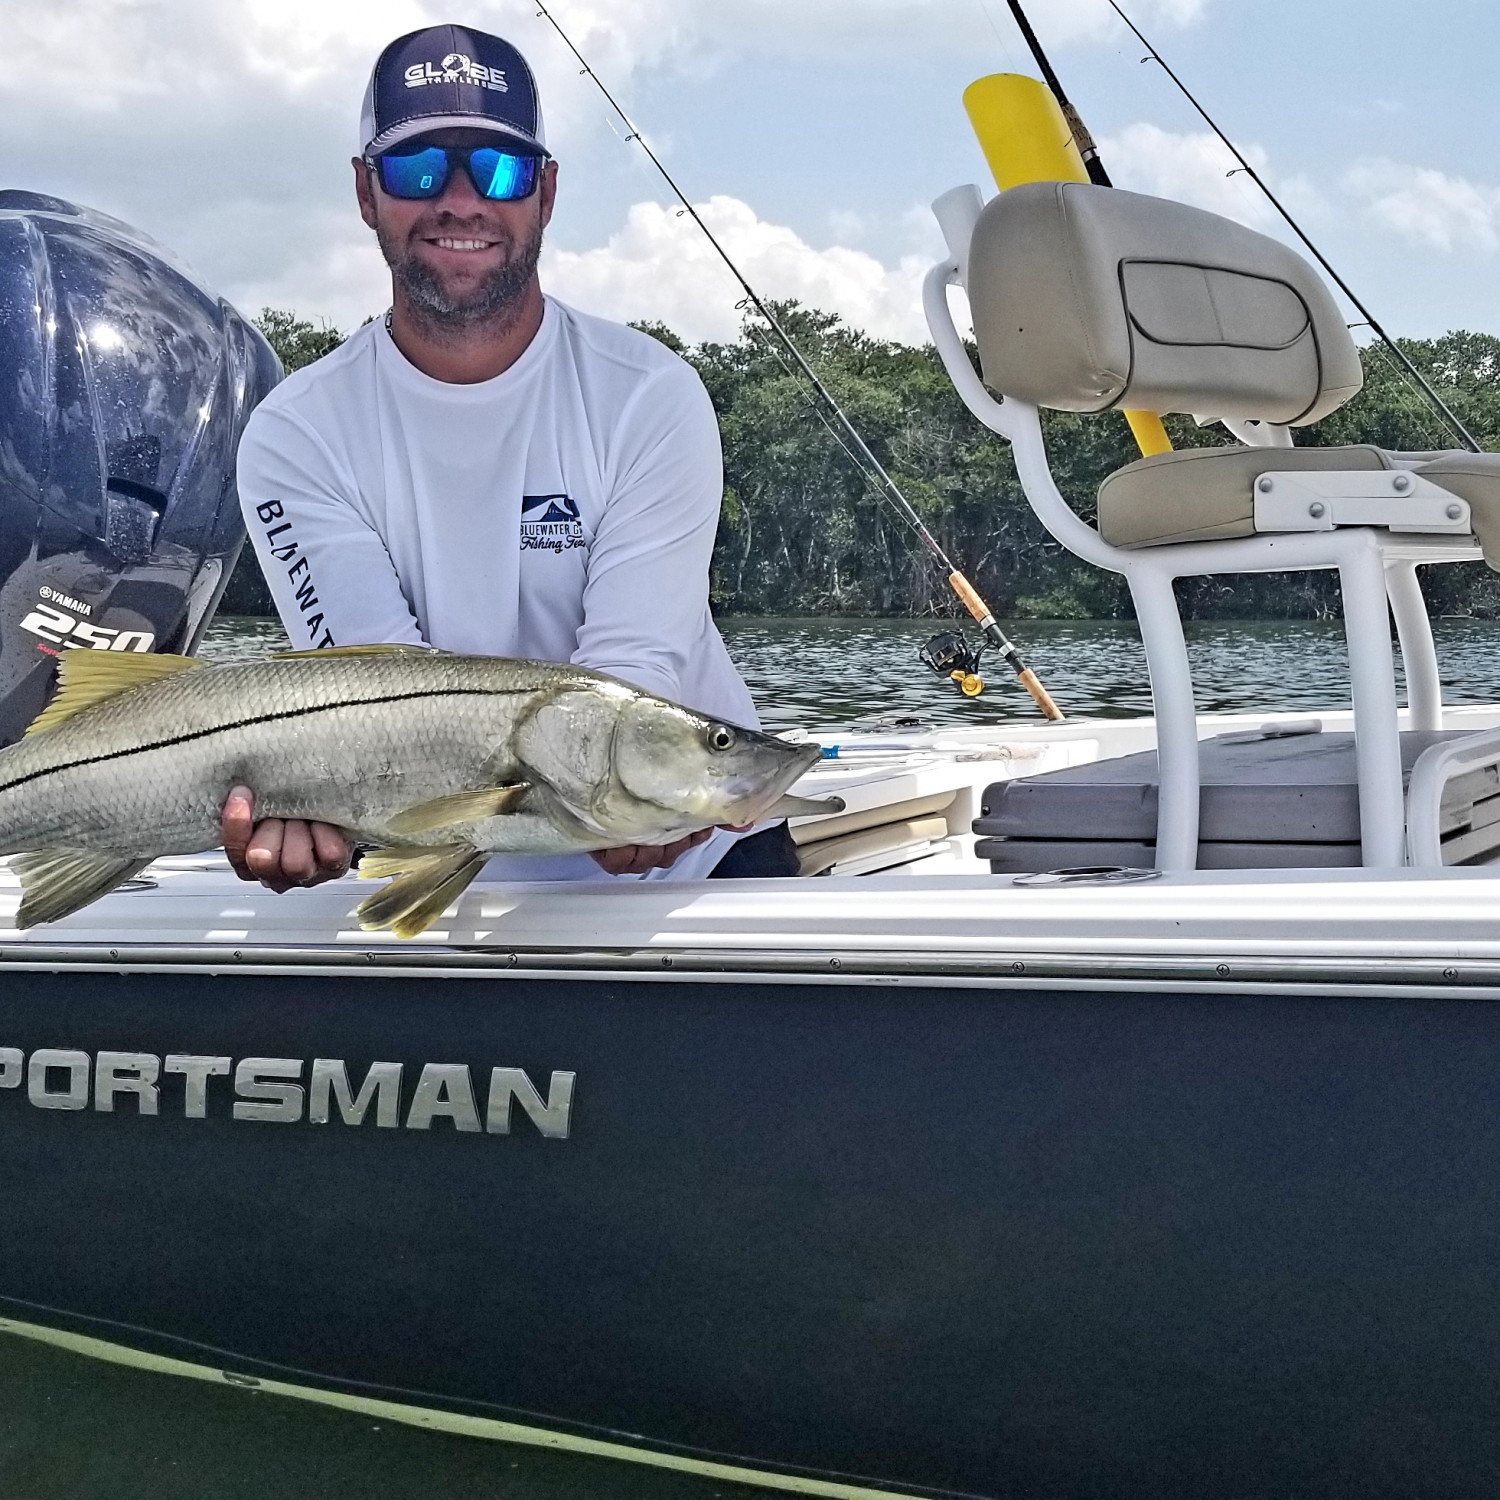 Title: Slaying the big girls - On board their Sportsman Tournament 234 Bay Boat - Location: Sarasota, FL. Participating in the Photo Contest #SportsmanMay2018